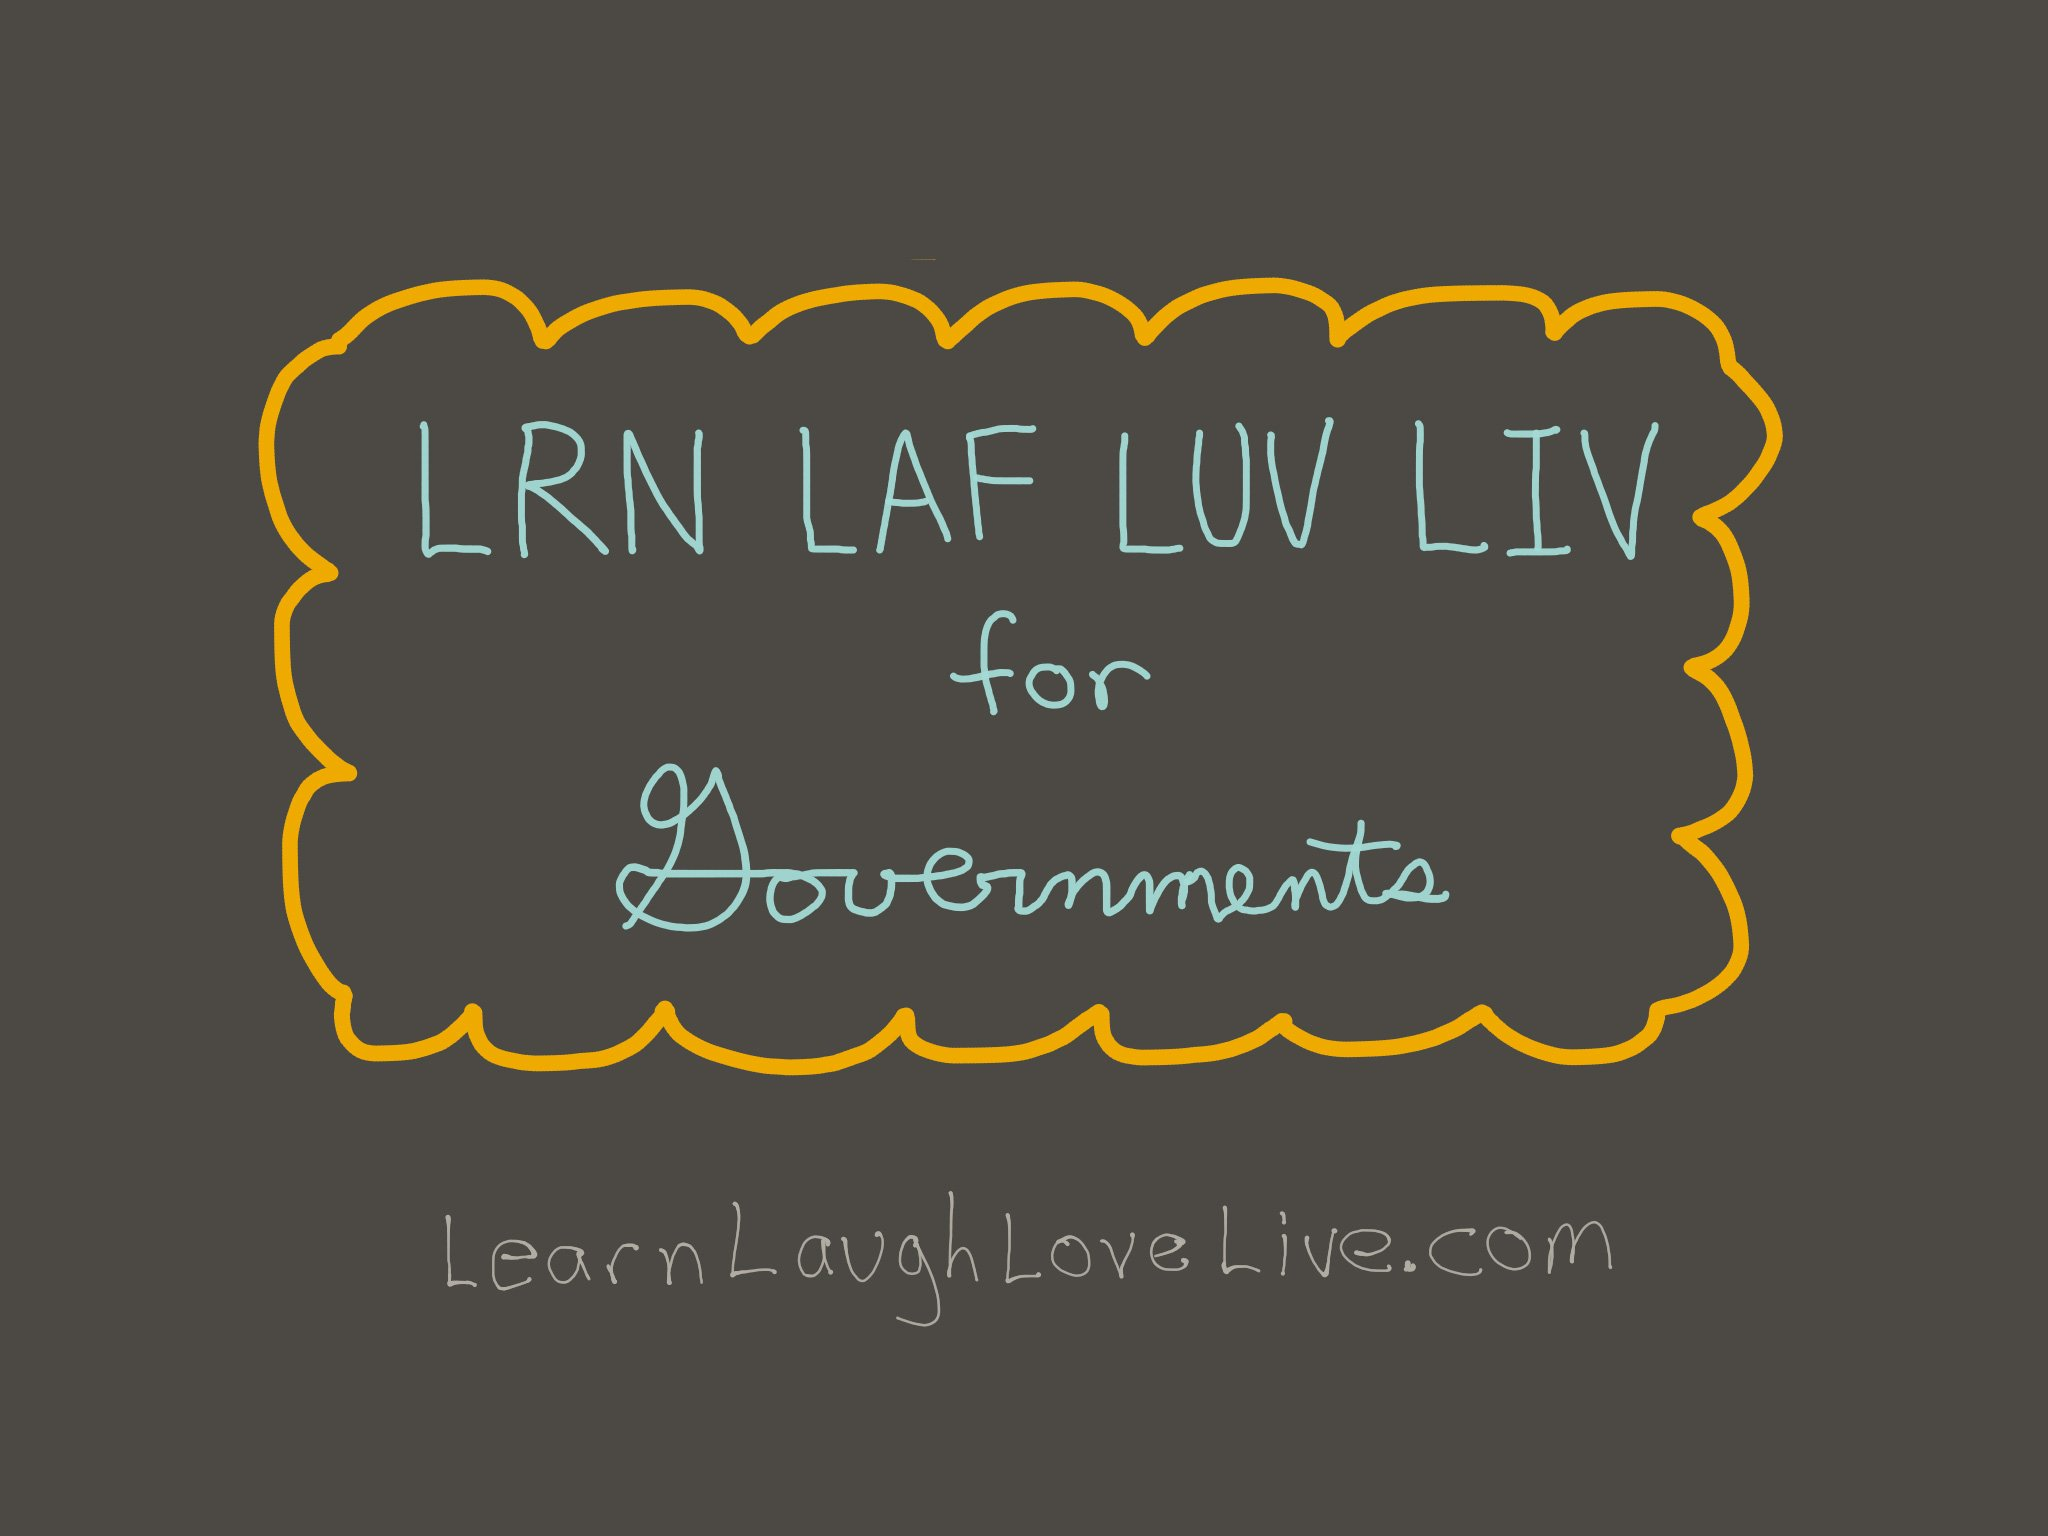 Government Governments LRN LAF LUV LIV LYF Learn Laugh Love Live Life